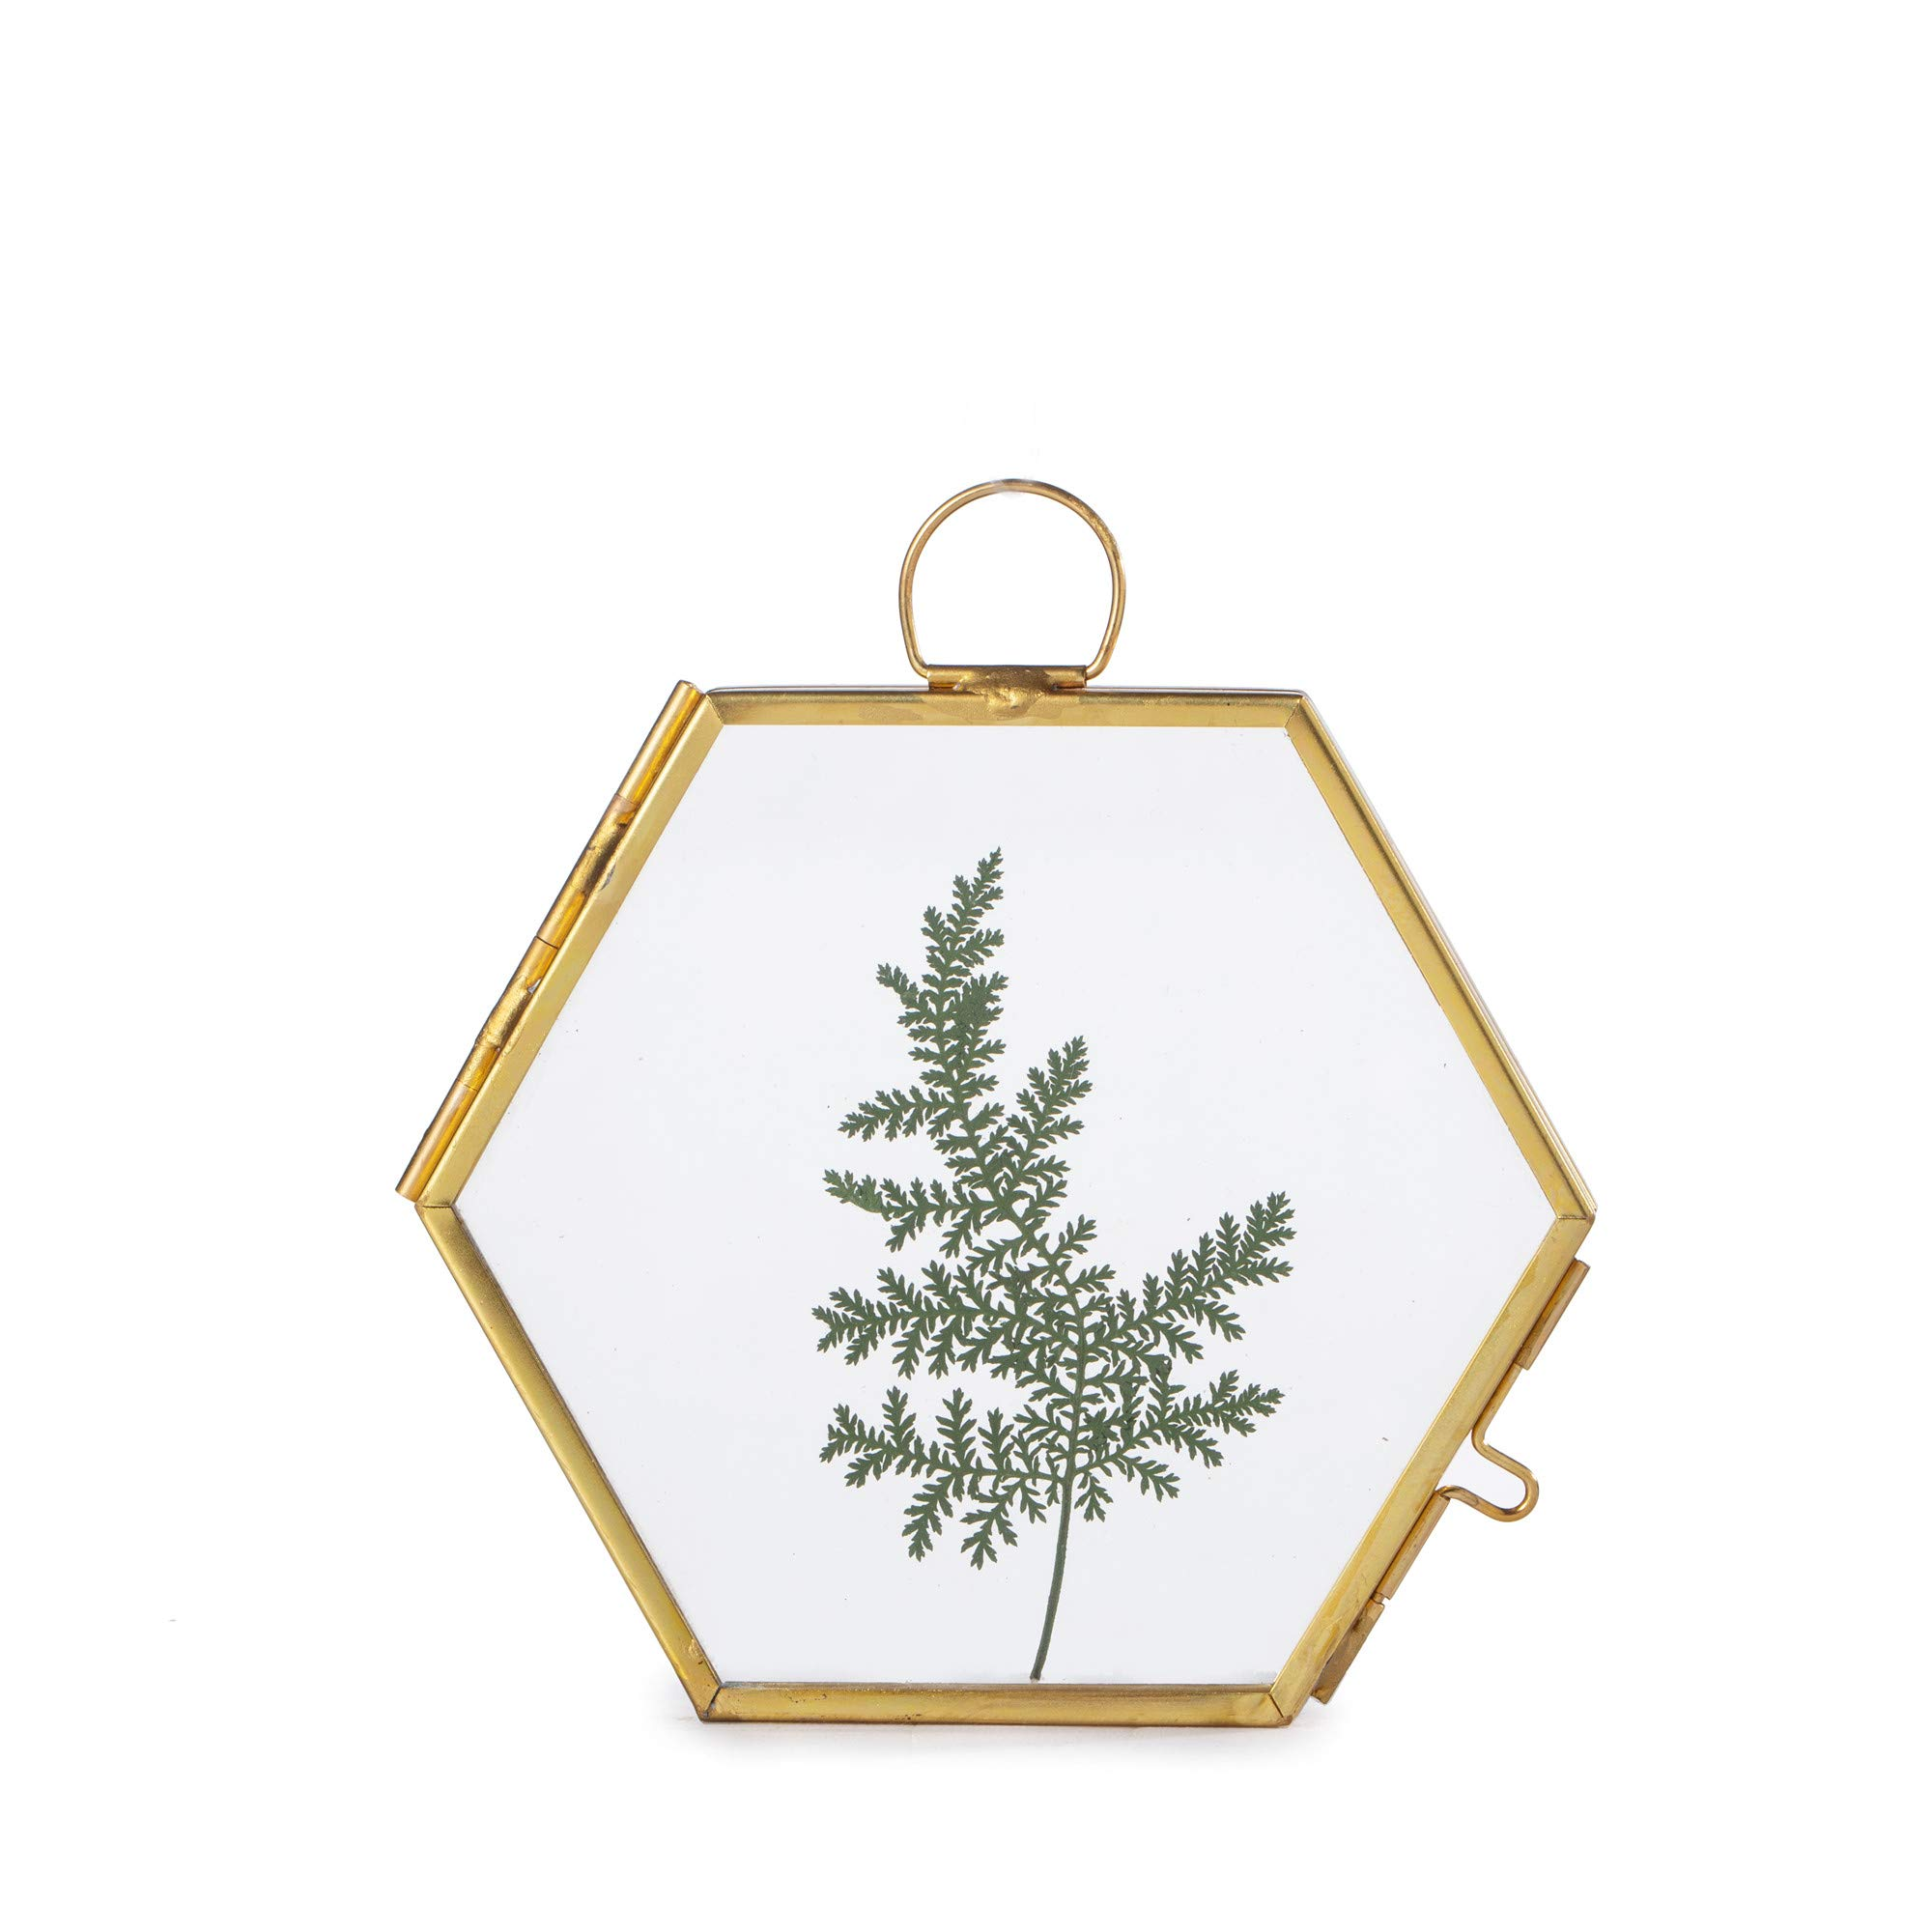 NCYP Small Wall Hanging Brass Hexagon Glass Artwork Certificate Photo Picture Display Frame Geometric Ornament Plant Specimen Clip Modern Vertical Decor Card Holder 3.5 inchs, Glass Frame only